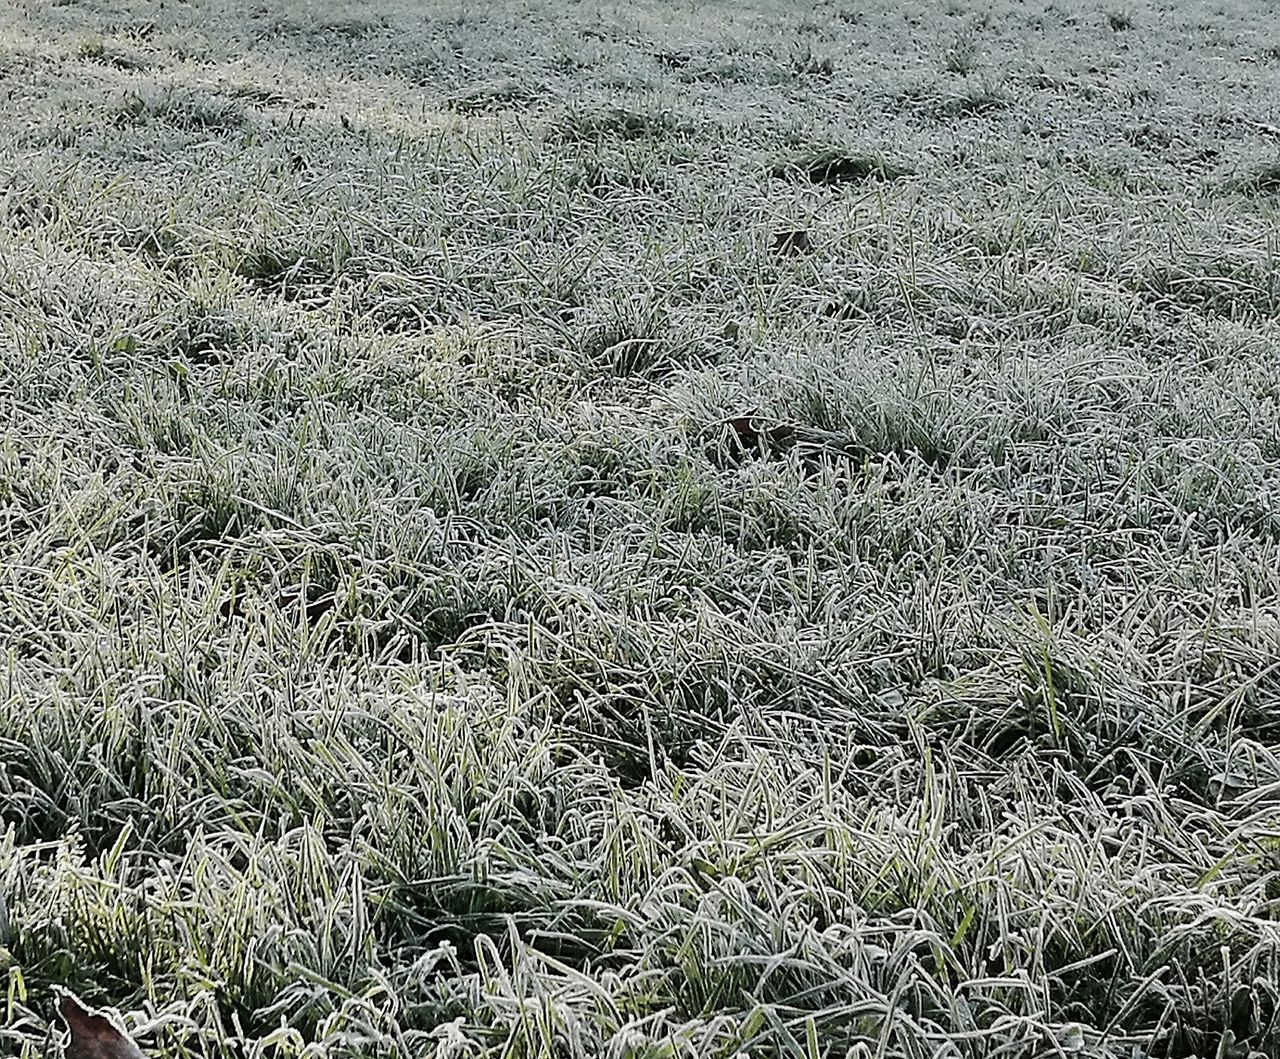 Iced Grass Grass Erba Ghiacciata Ghiaccio Ice Freddo Winter Inverno Gelata Cold Temperature Cold Nature Outdoors